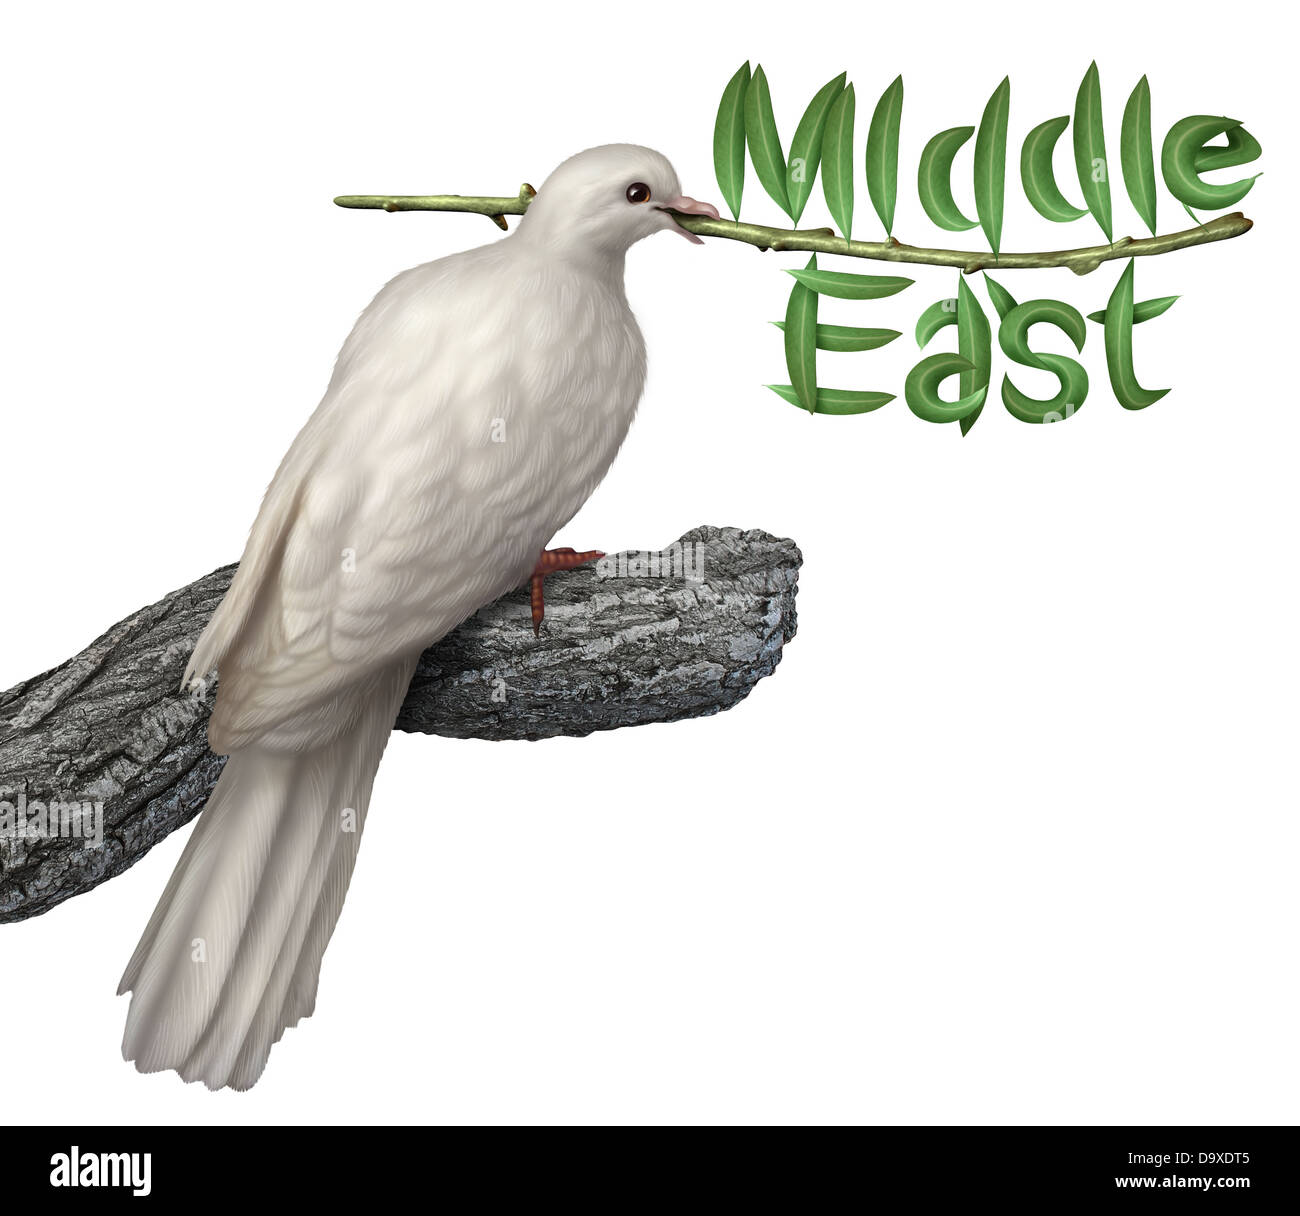 Middle East peace plan and diplomacy concept with a white dove holding an olive branch with the leaves in the shape - Stock Image